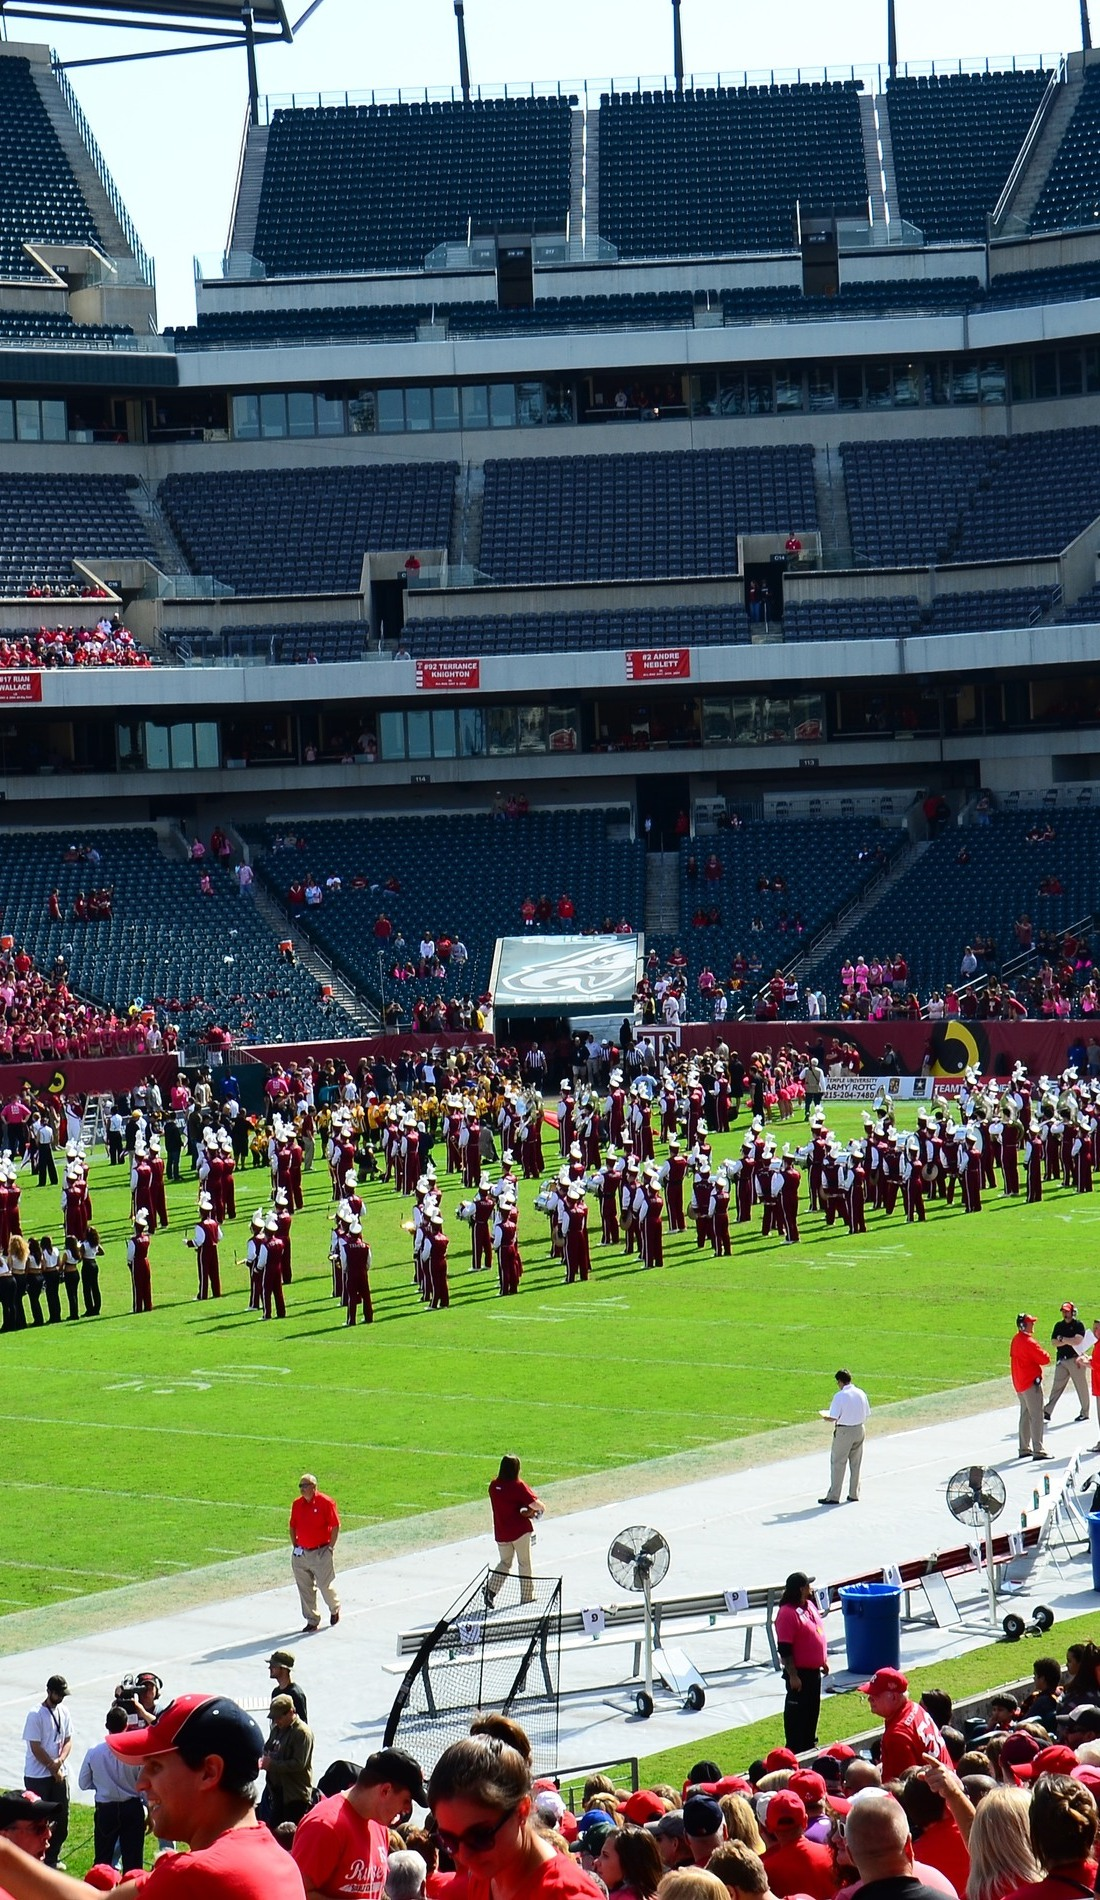 A Temple Owls Football live event